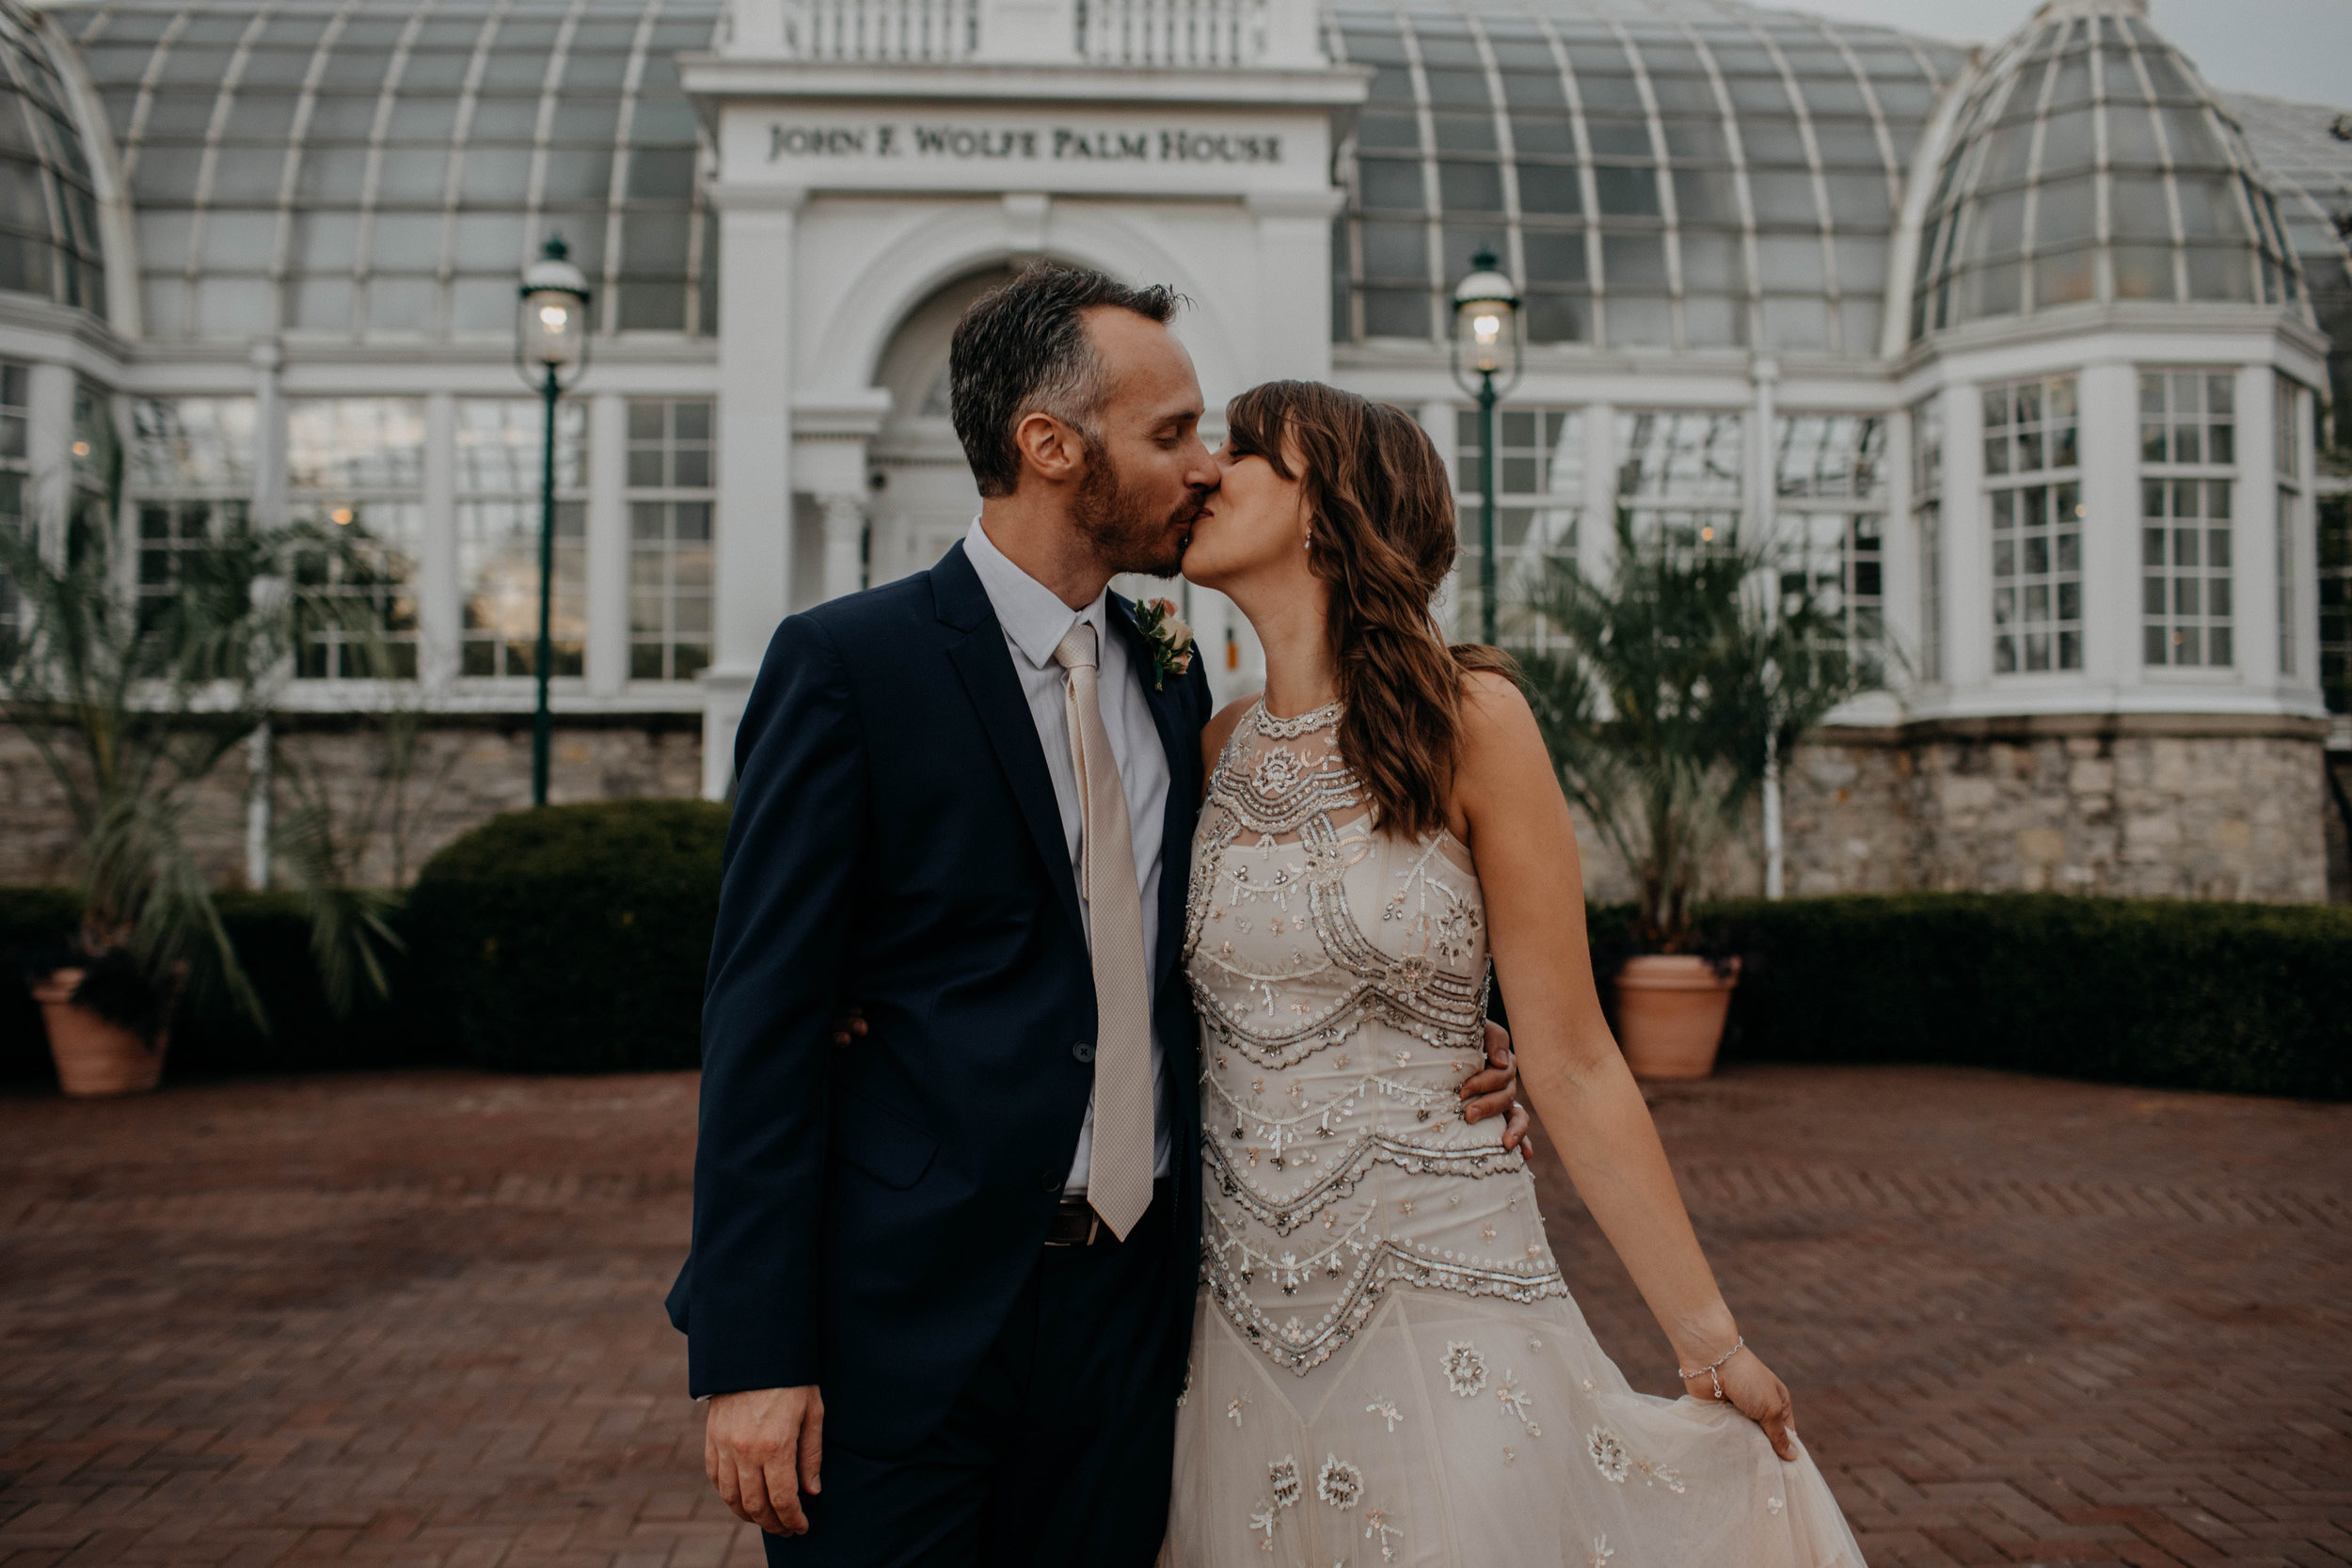 franklin park conservatory wedding columbus ohio wedding photographer grace e jones photography169.jpg